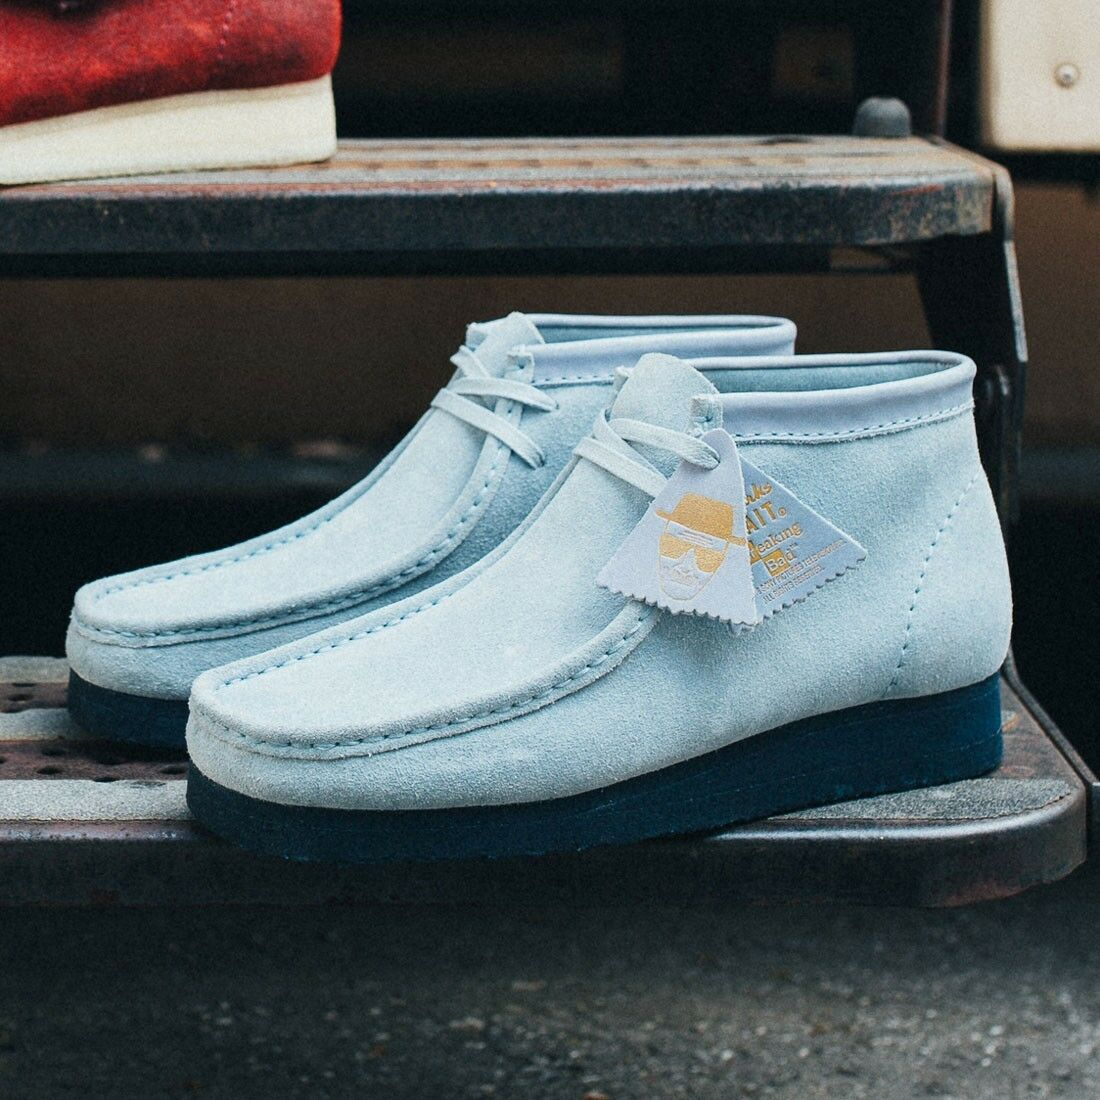 BAIT x Breaking Bad x Clarks Wallabee bota azul Sky US11.5